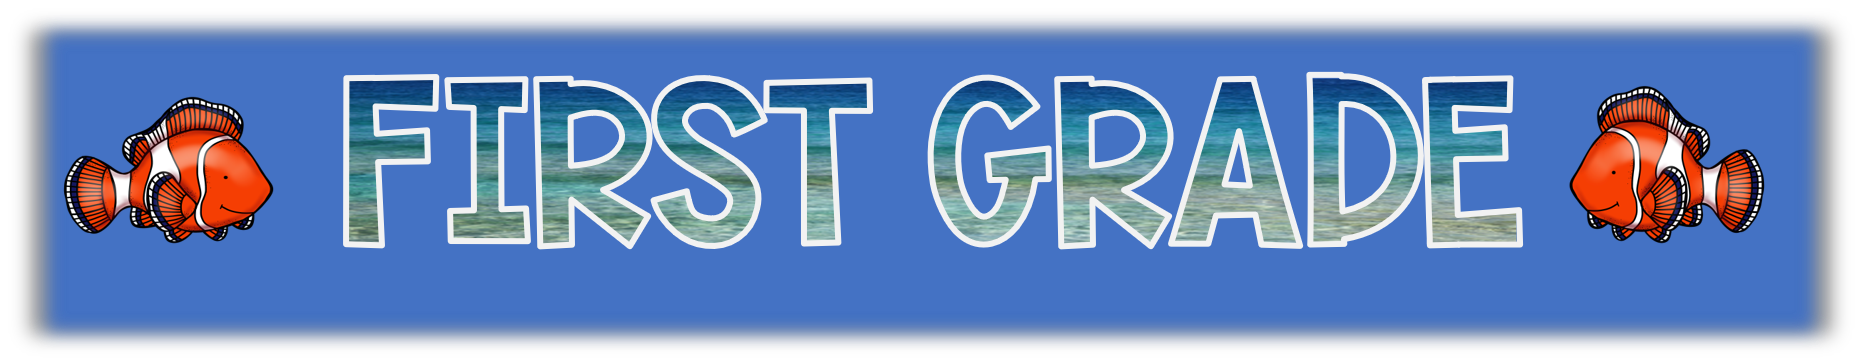 image of a banner reading first grade